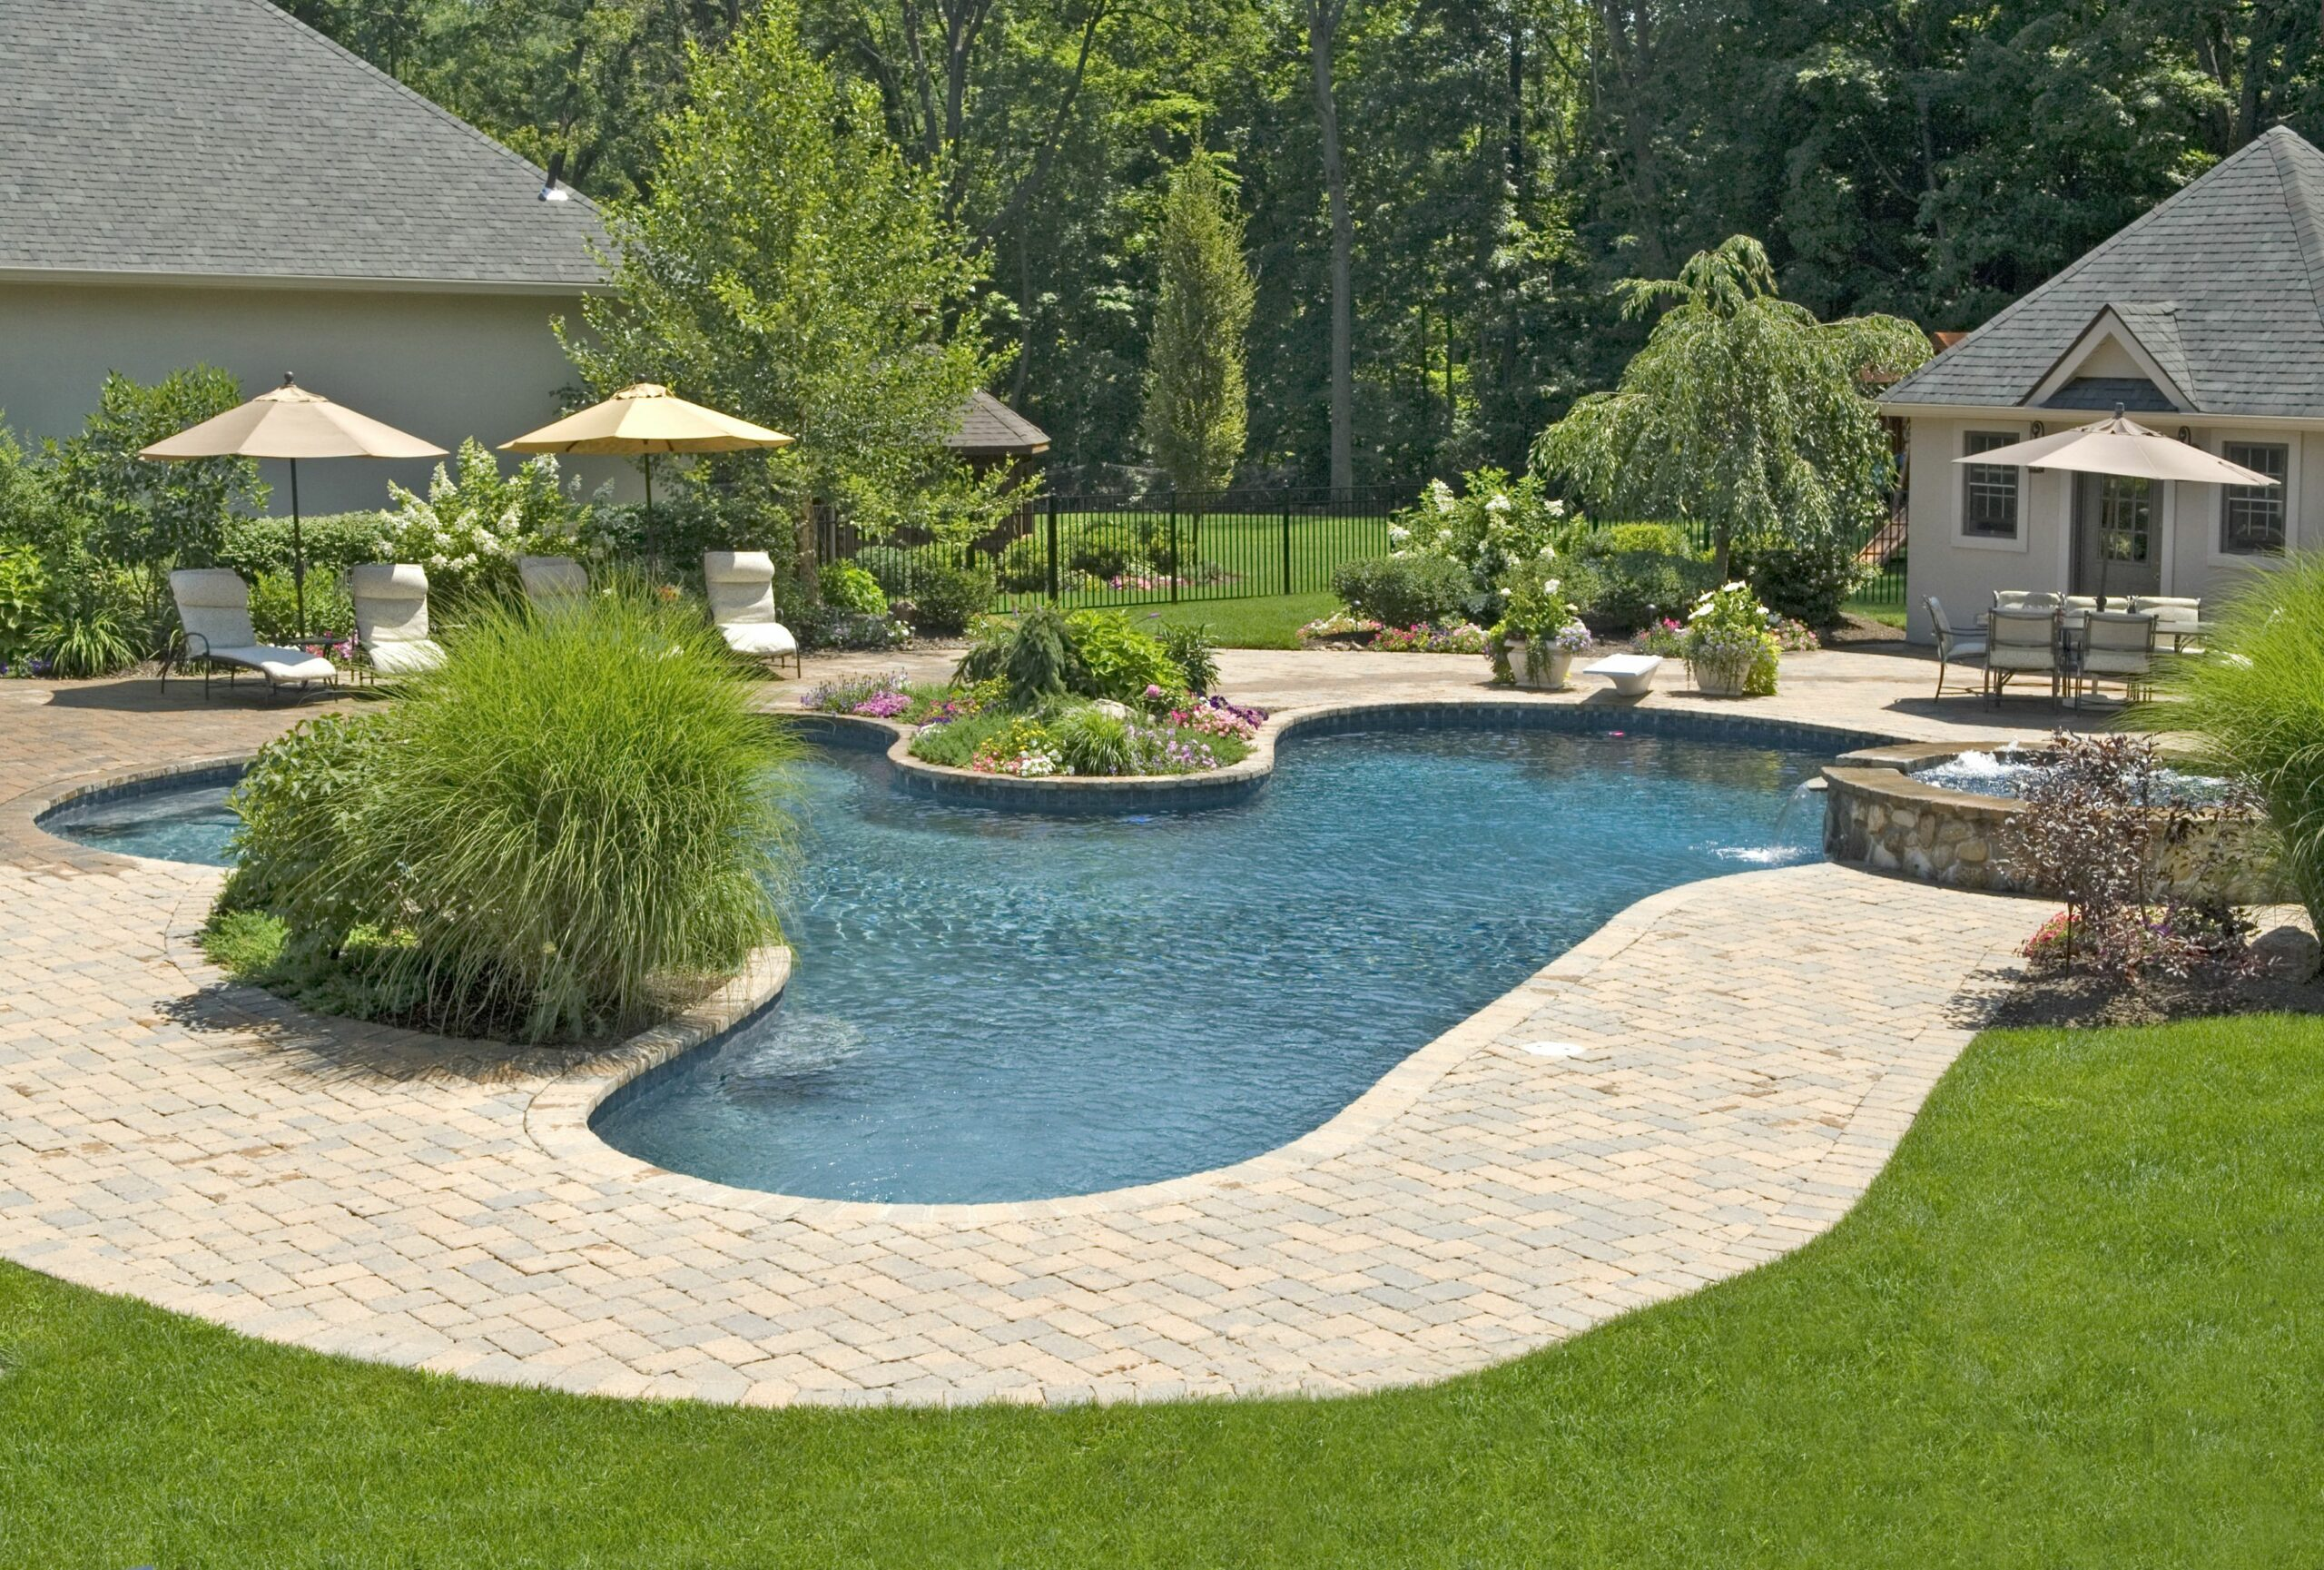 Backyard Pool Ideas Landscaping Pictures On A Budget Simple Home ..